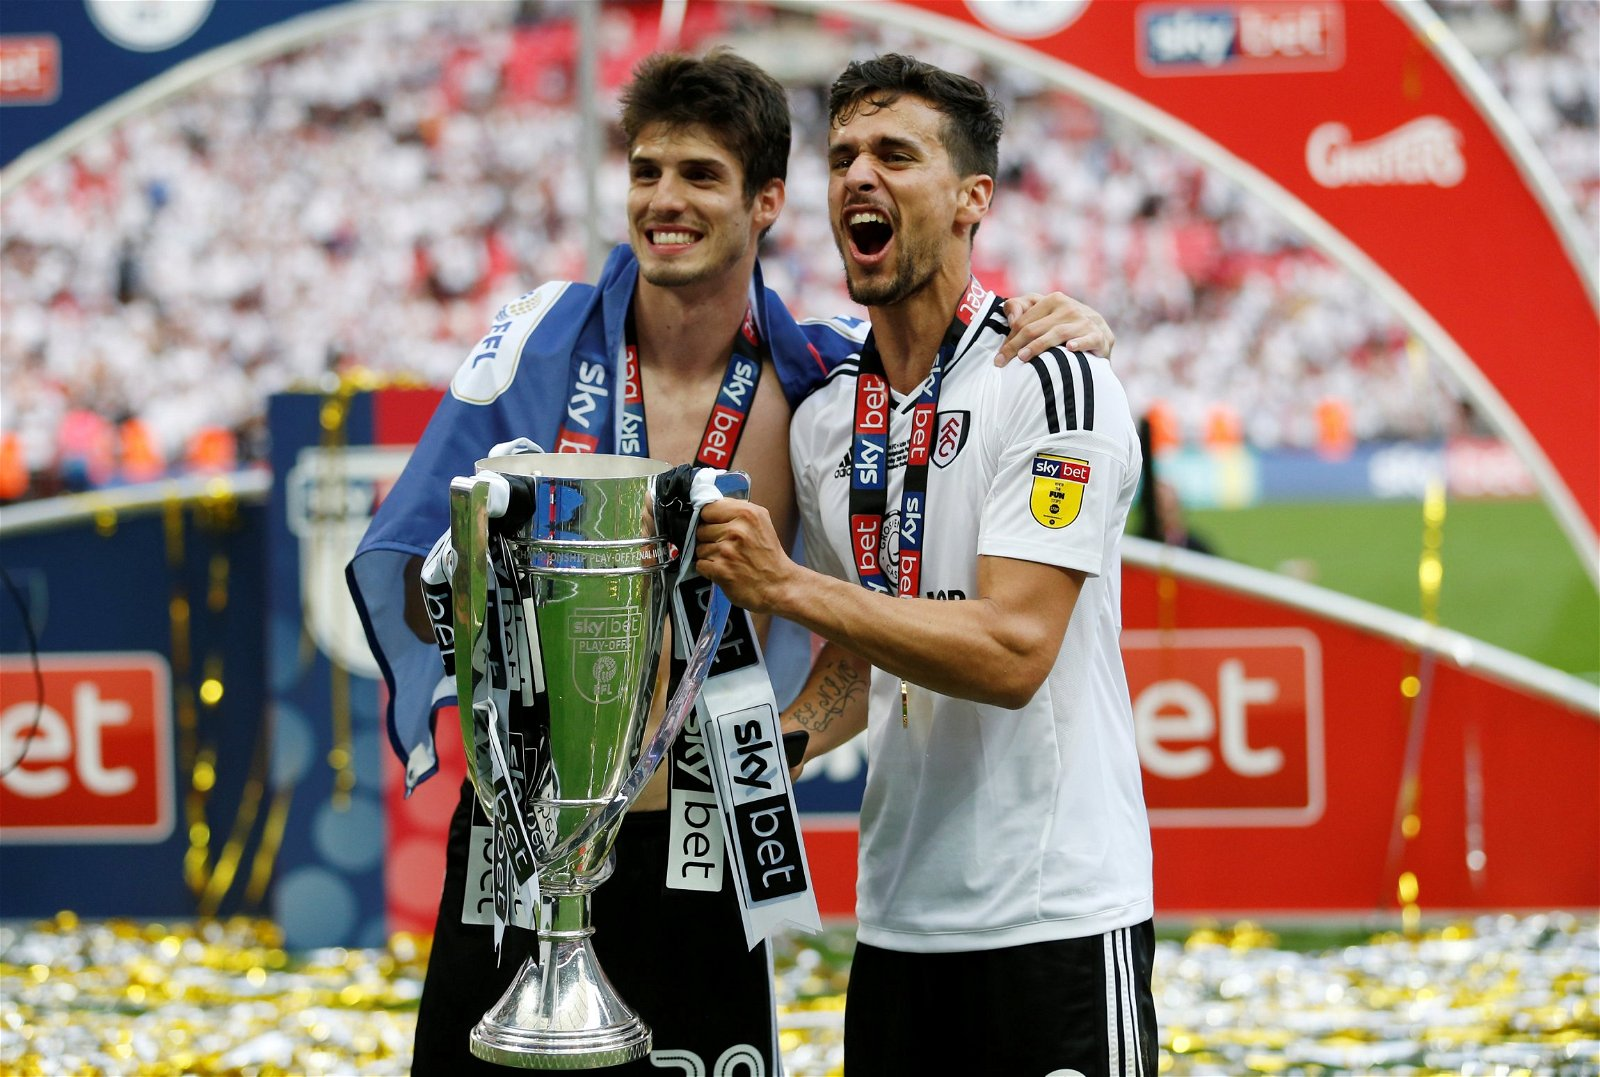 Lucas Piazon with the Championship play-off trophy